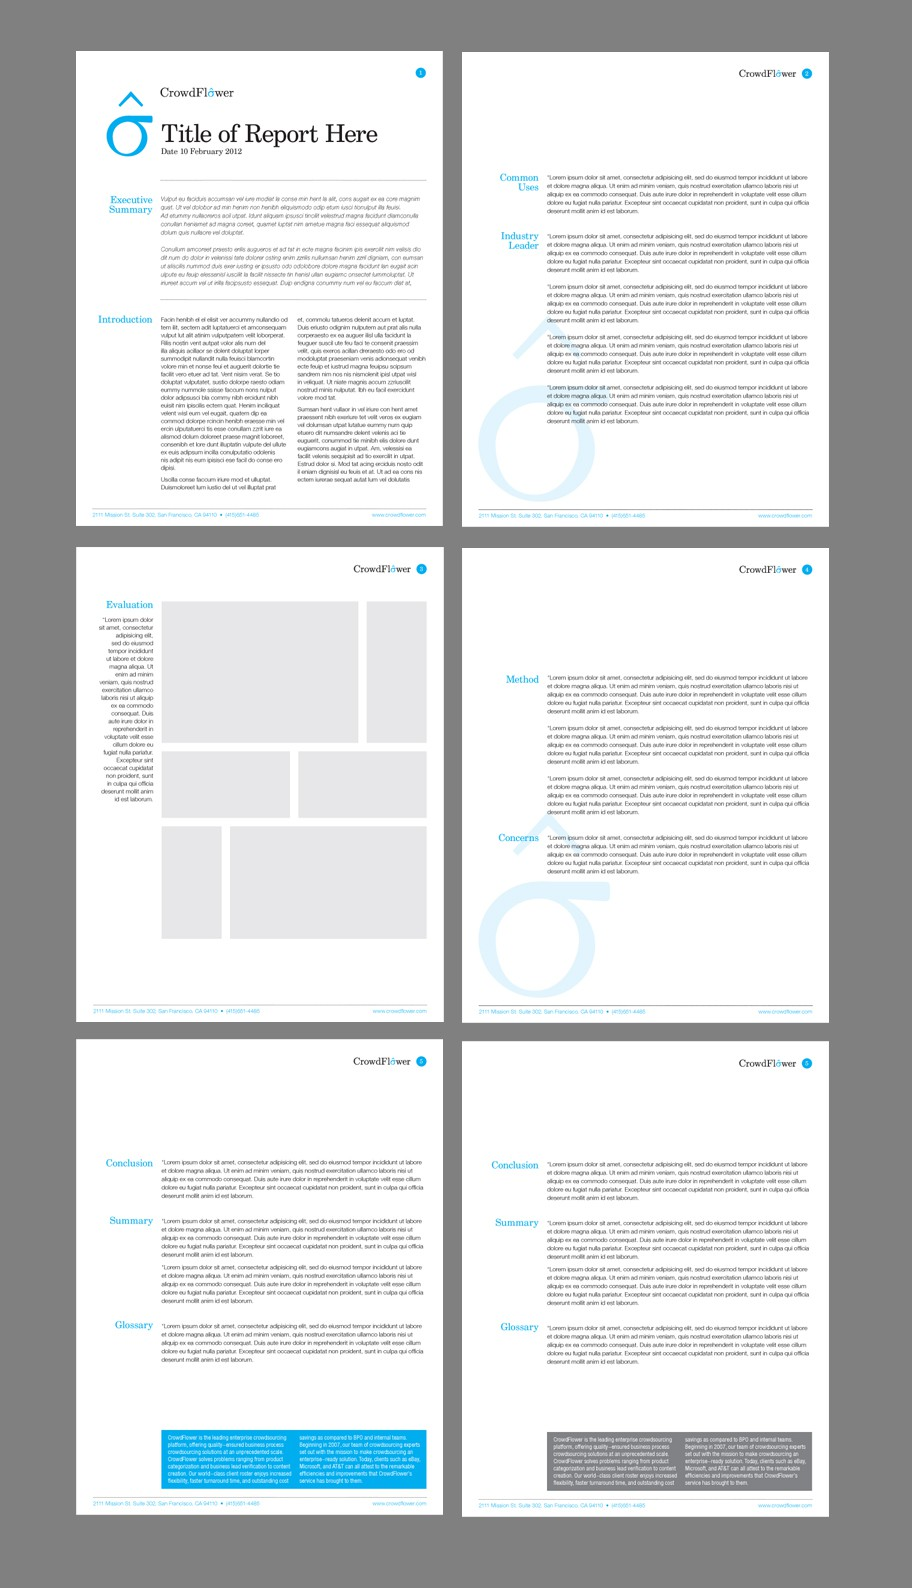 Marketing Paper Templates for CrowdFlower